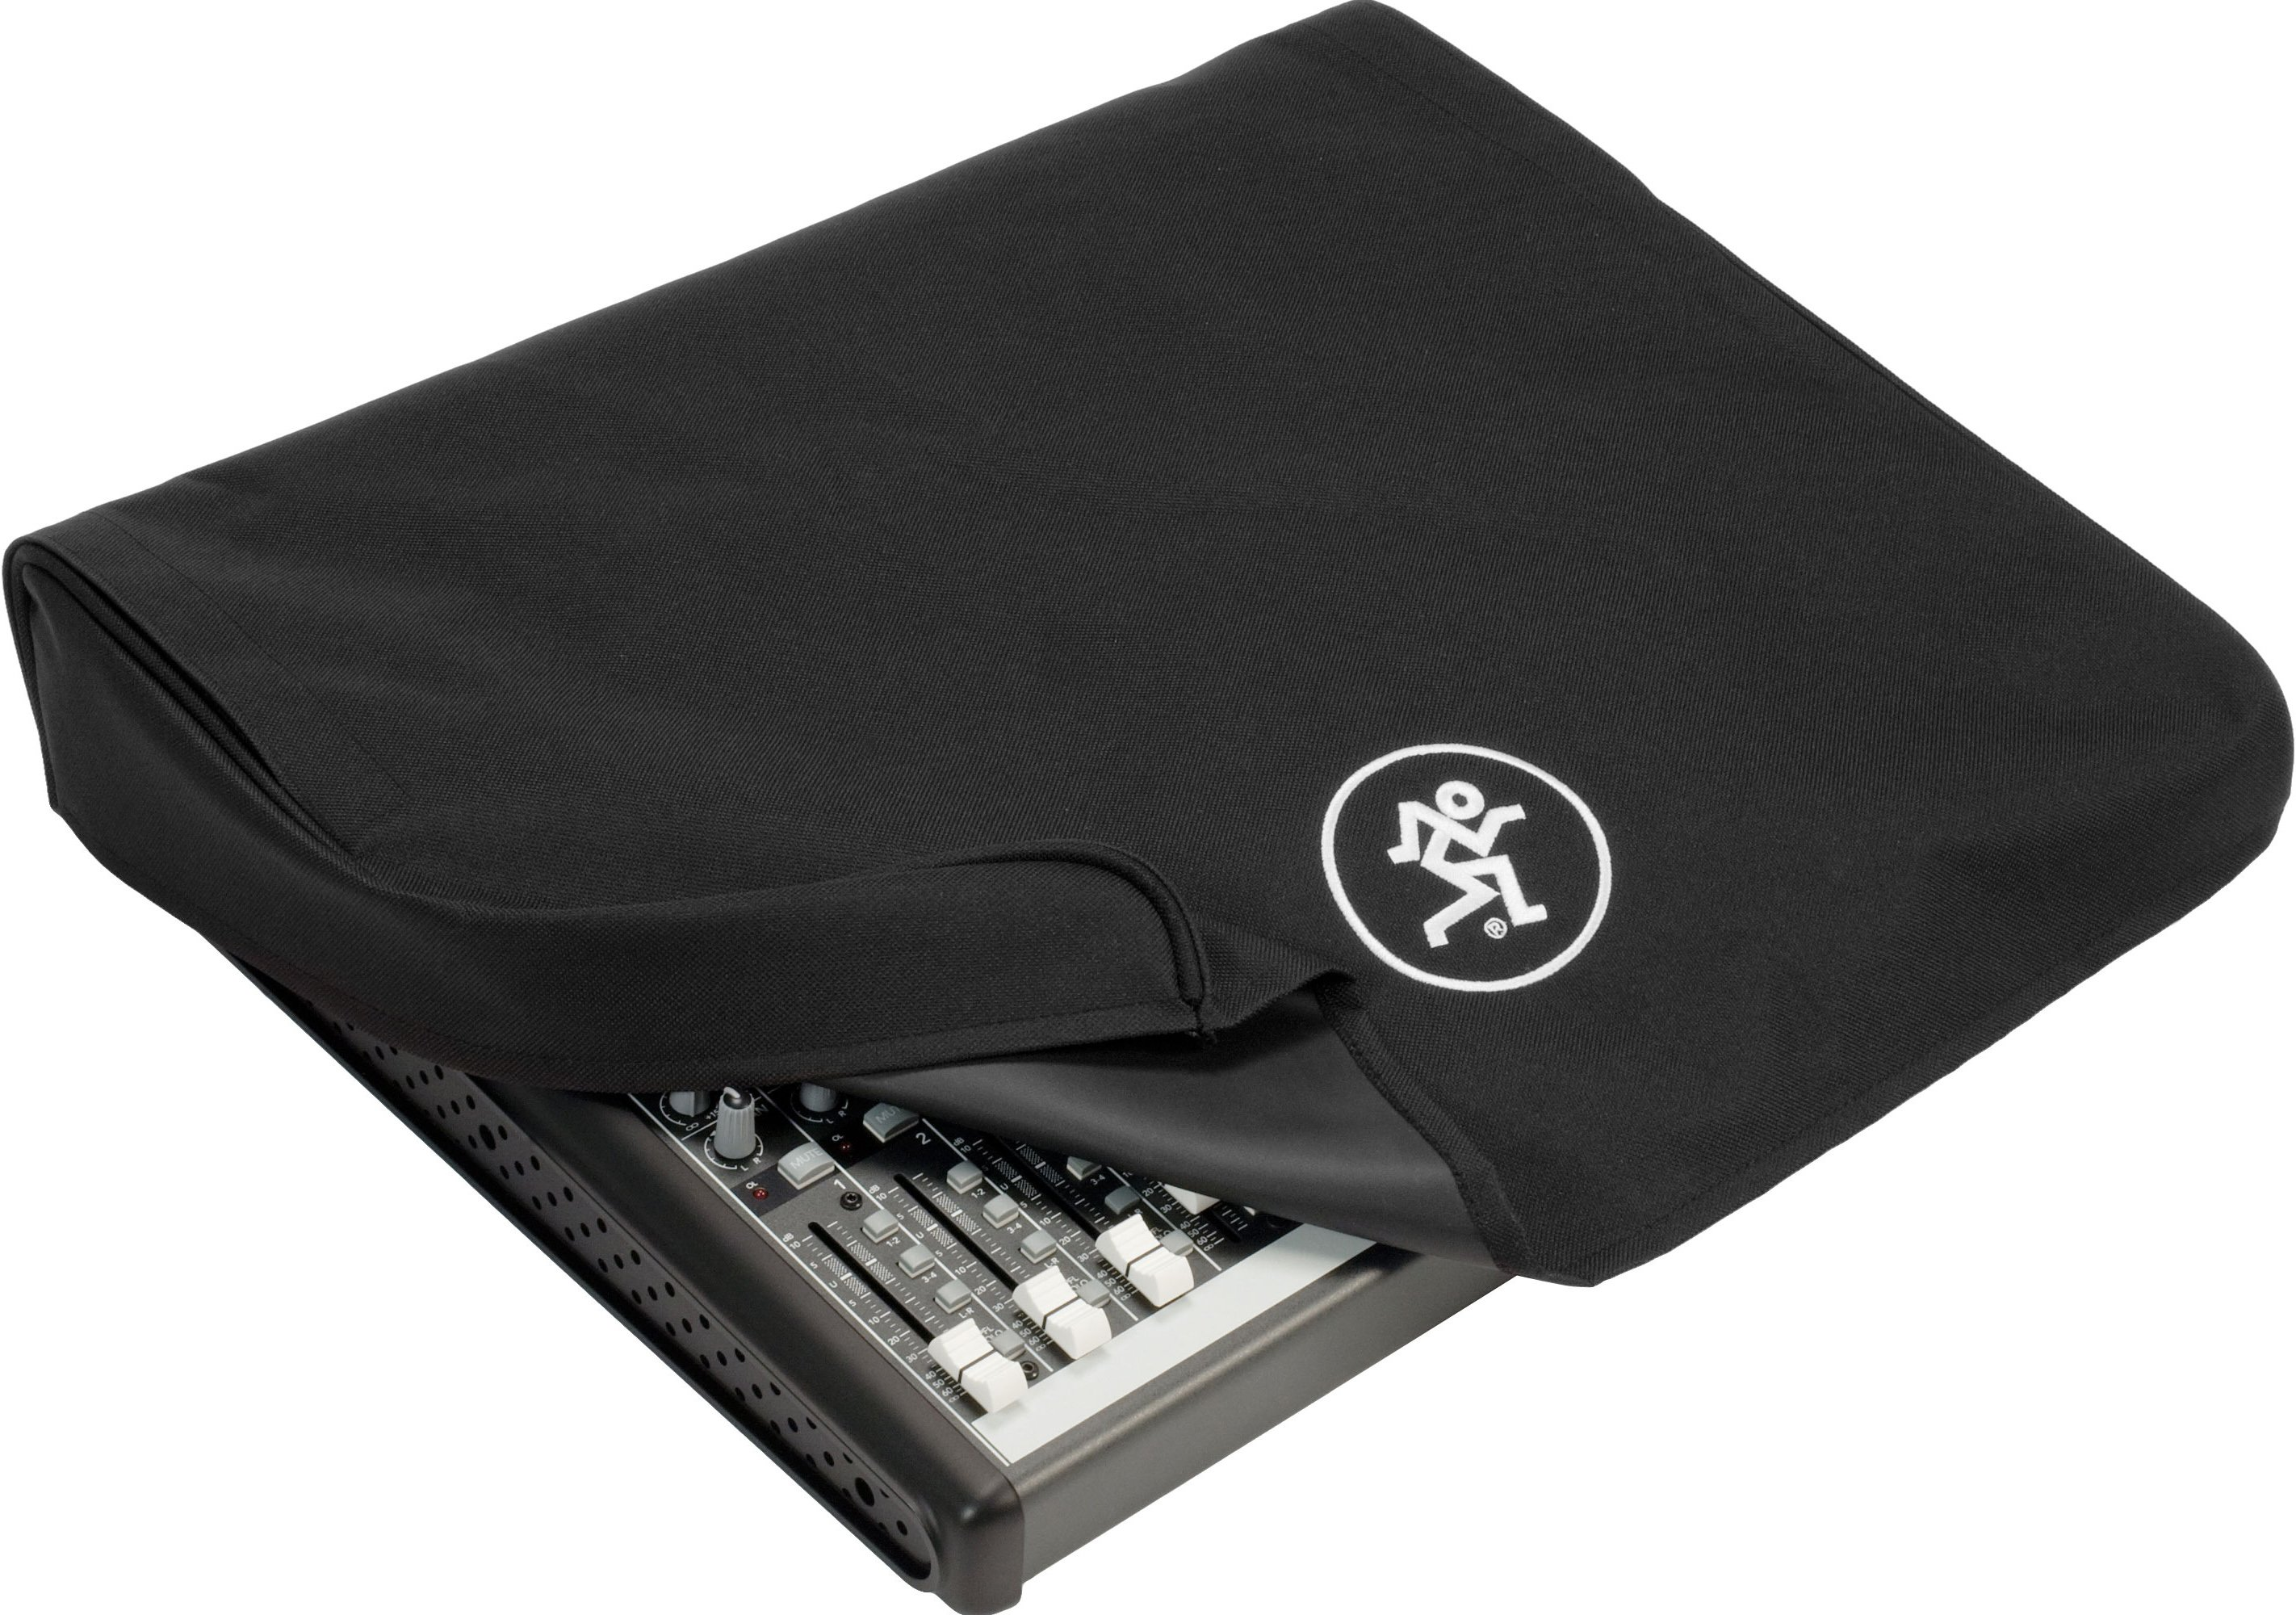 Dust Cover for ProFX22 Mixer